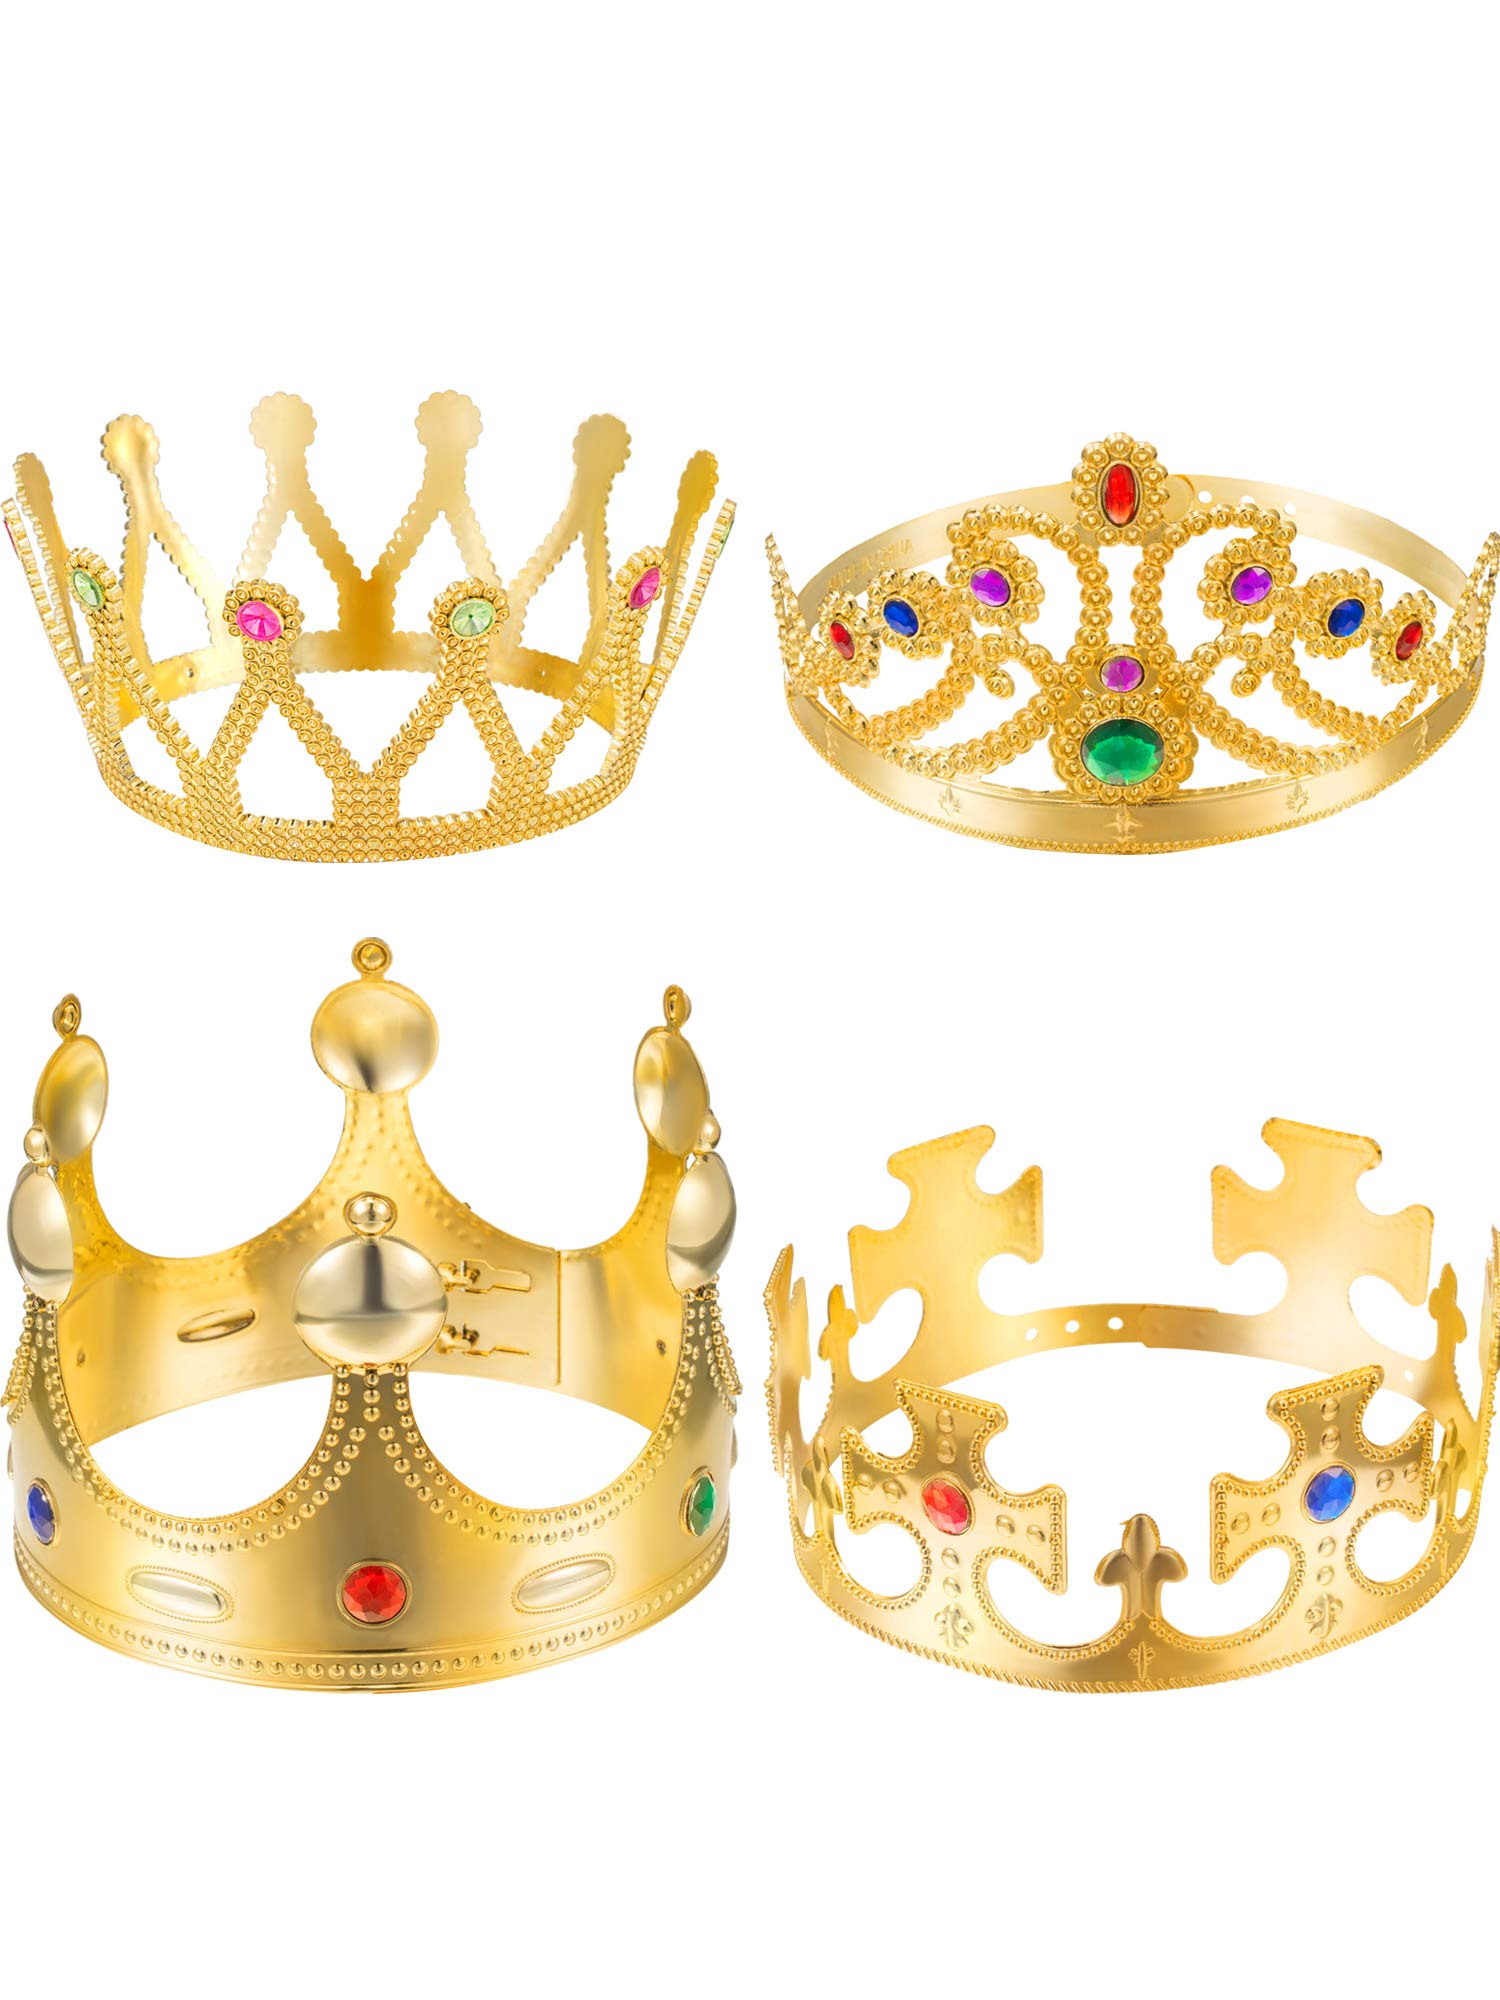 Zhanmai 4 Pieces Gold Crown Royal King Crowns and Queen Princess Jeweled Costume Accessories